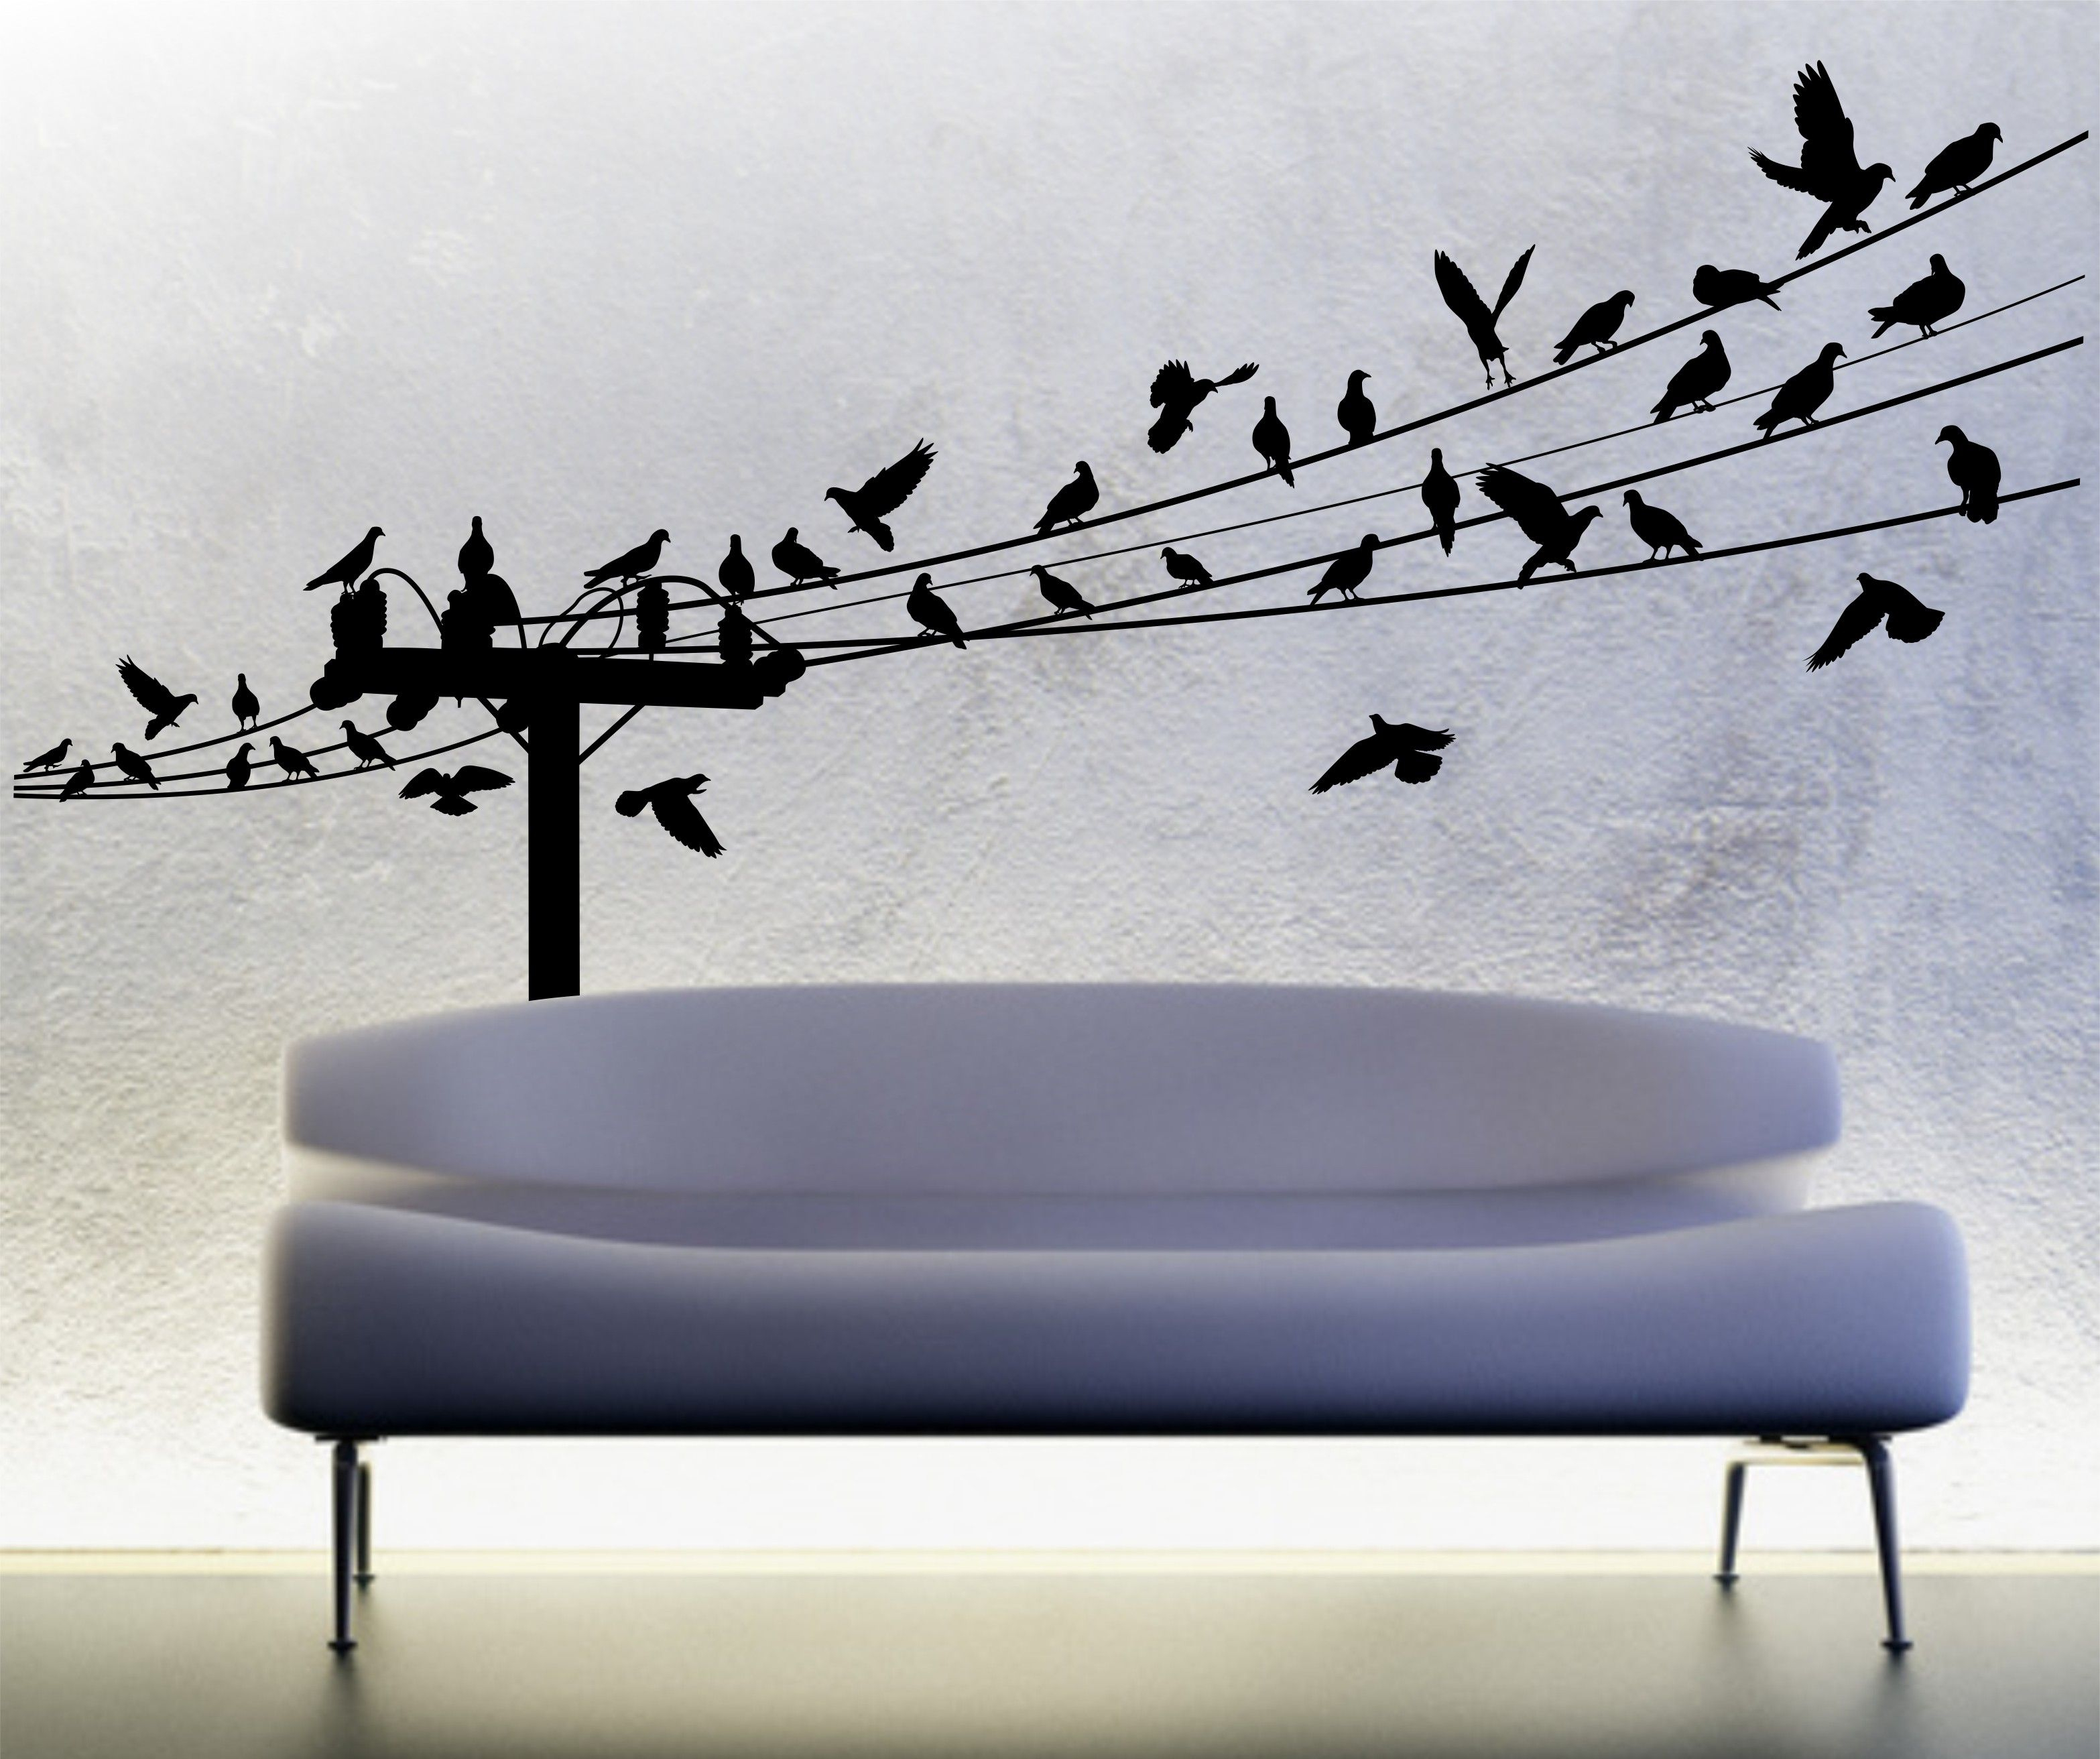 Birds On A Wire Wall Decal, Powerline Wall Decal, Power Line Within Birds On A Wire Wall Decor (View 22 of 30)